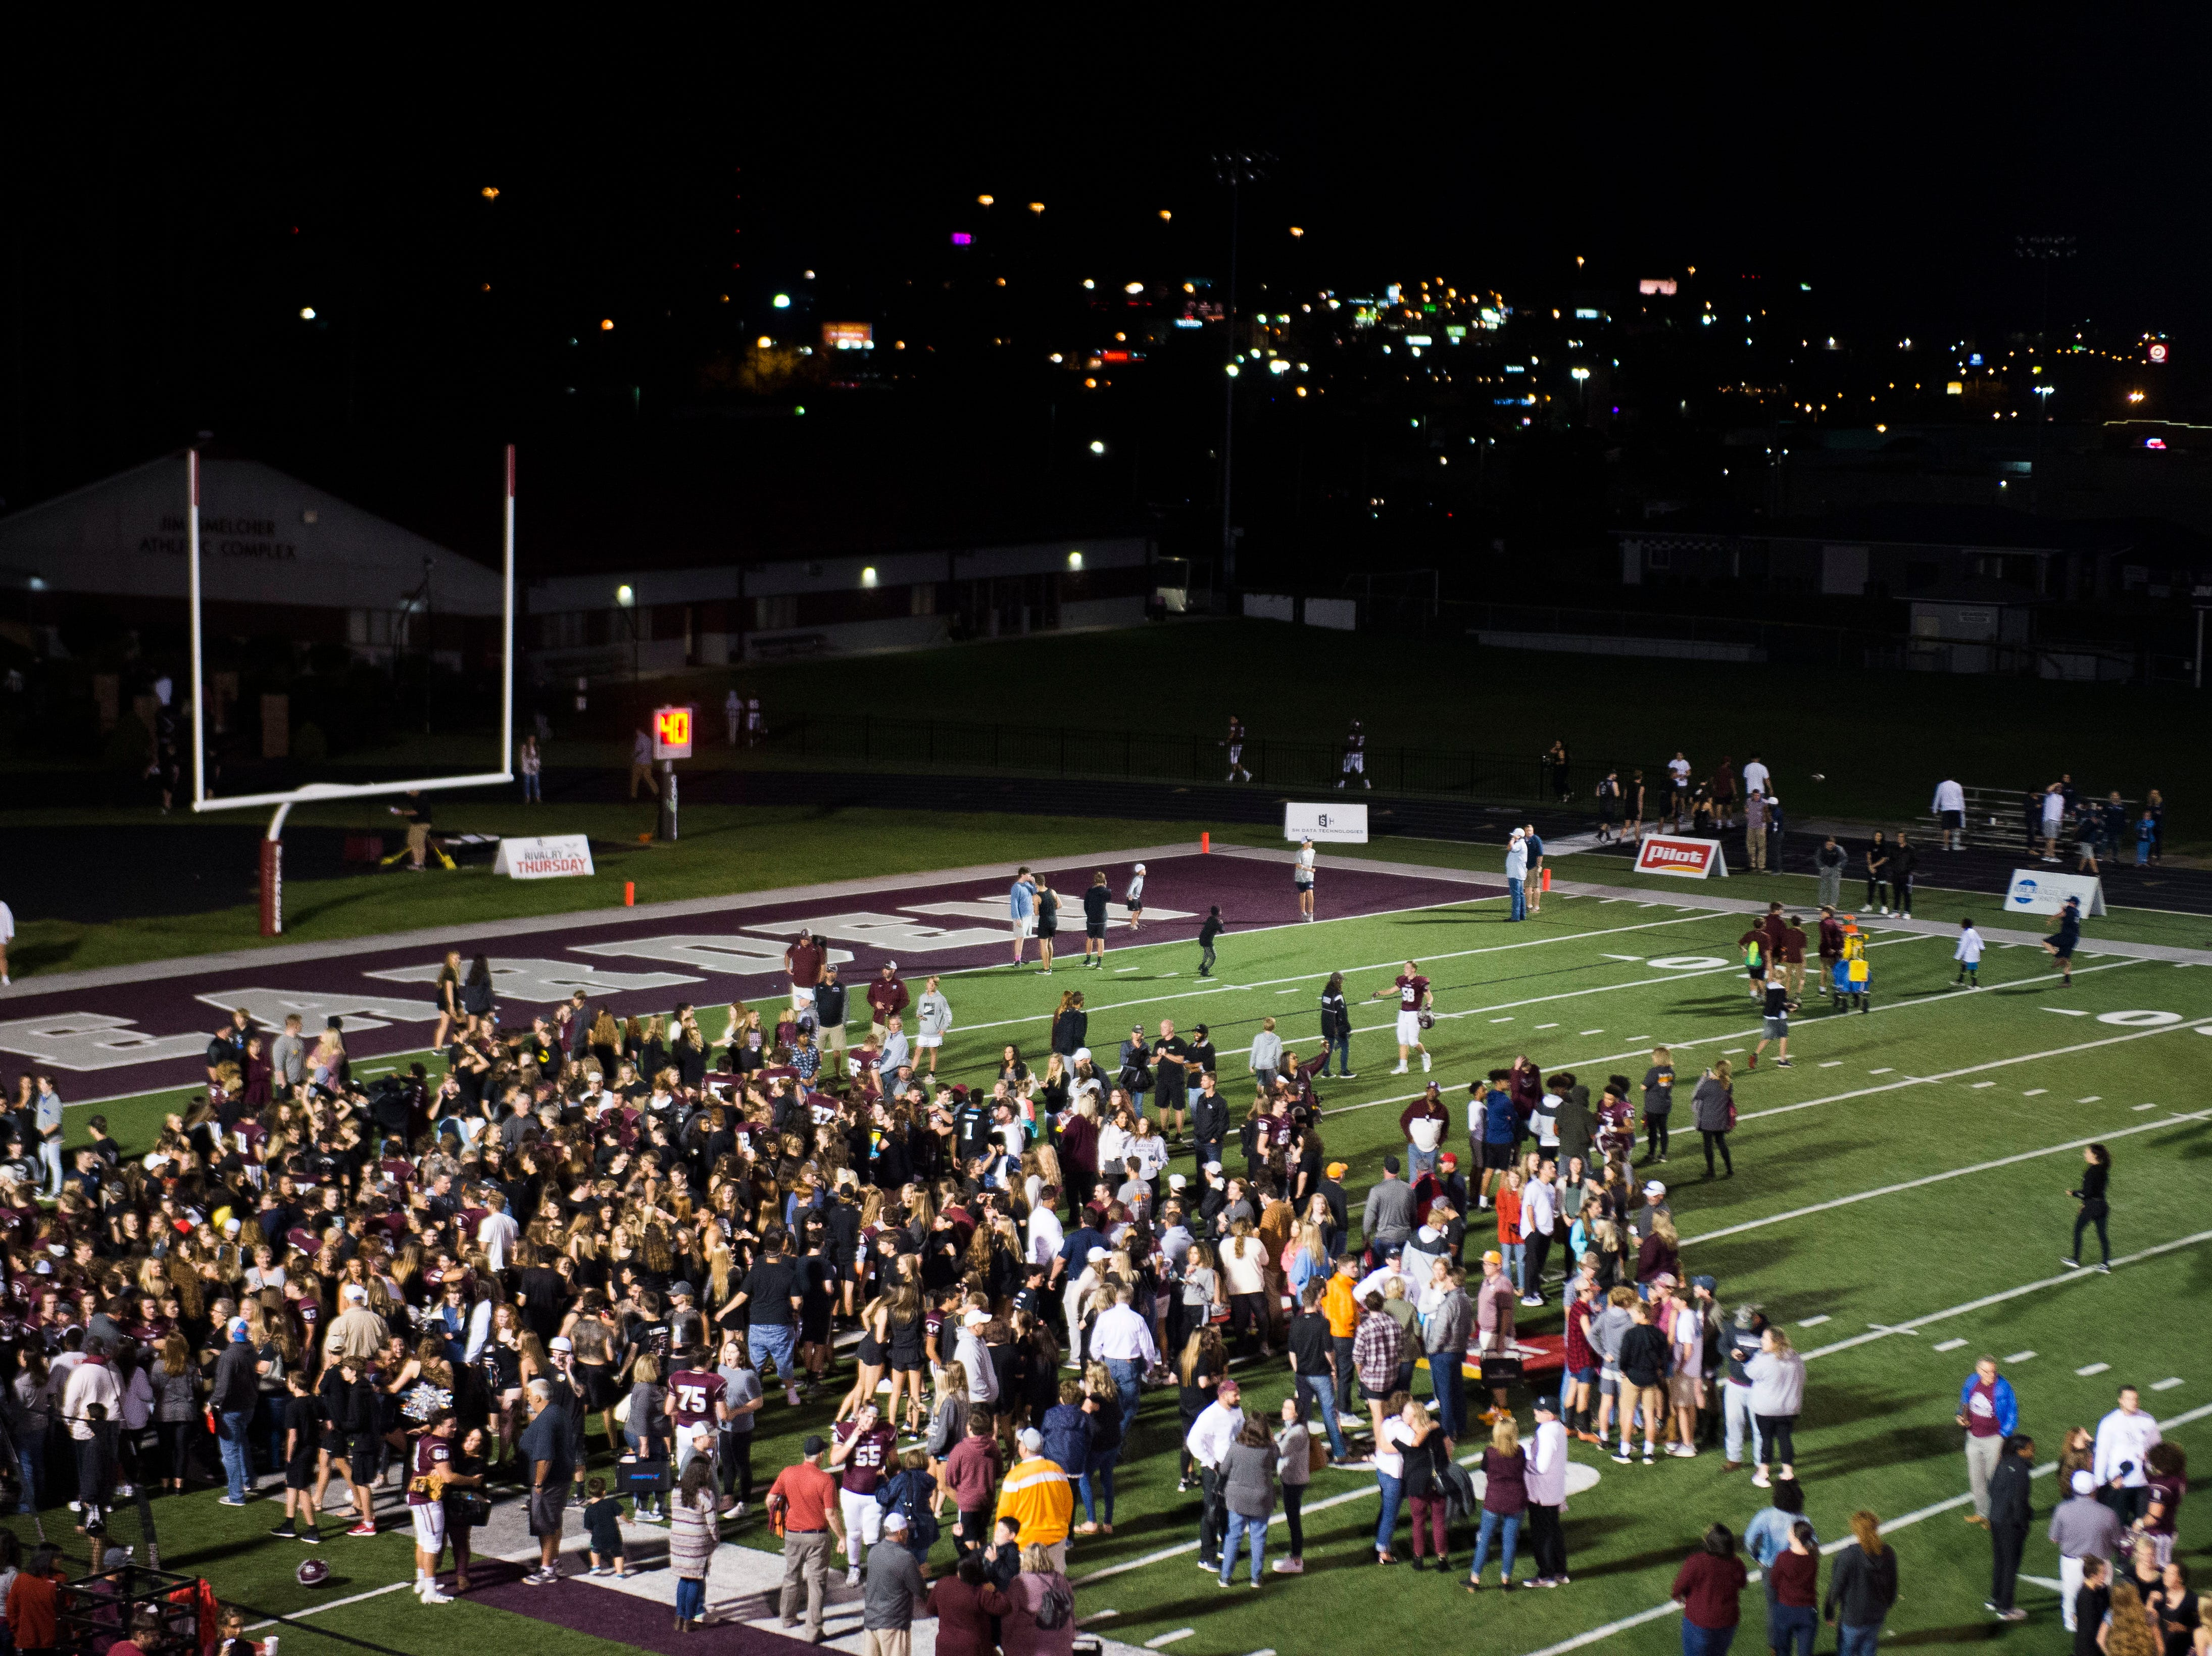 Bearden fans swarm the field after a game between Bearden and Farragut at Bearden Thursday, Oct. 11, 2018. Bearden took down Farragut 17-13.